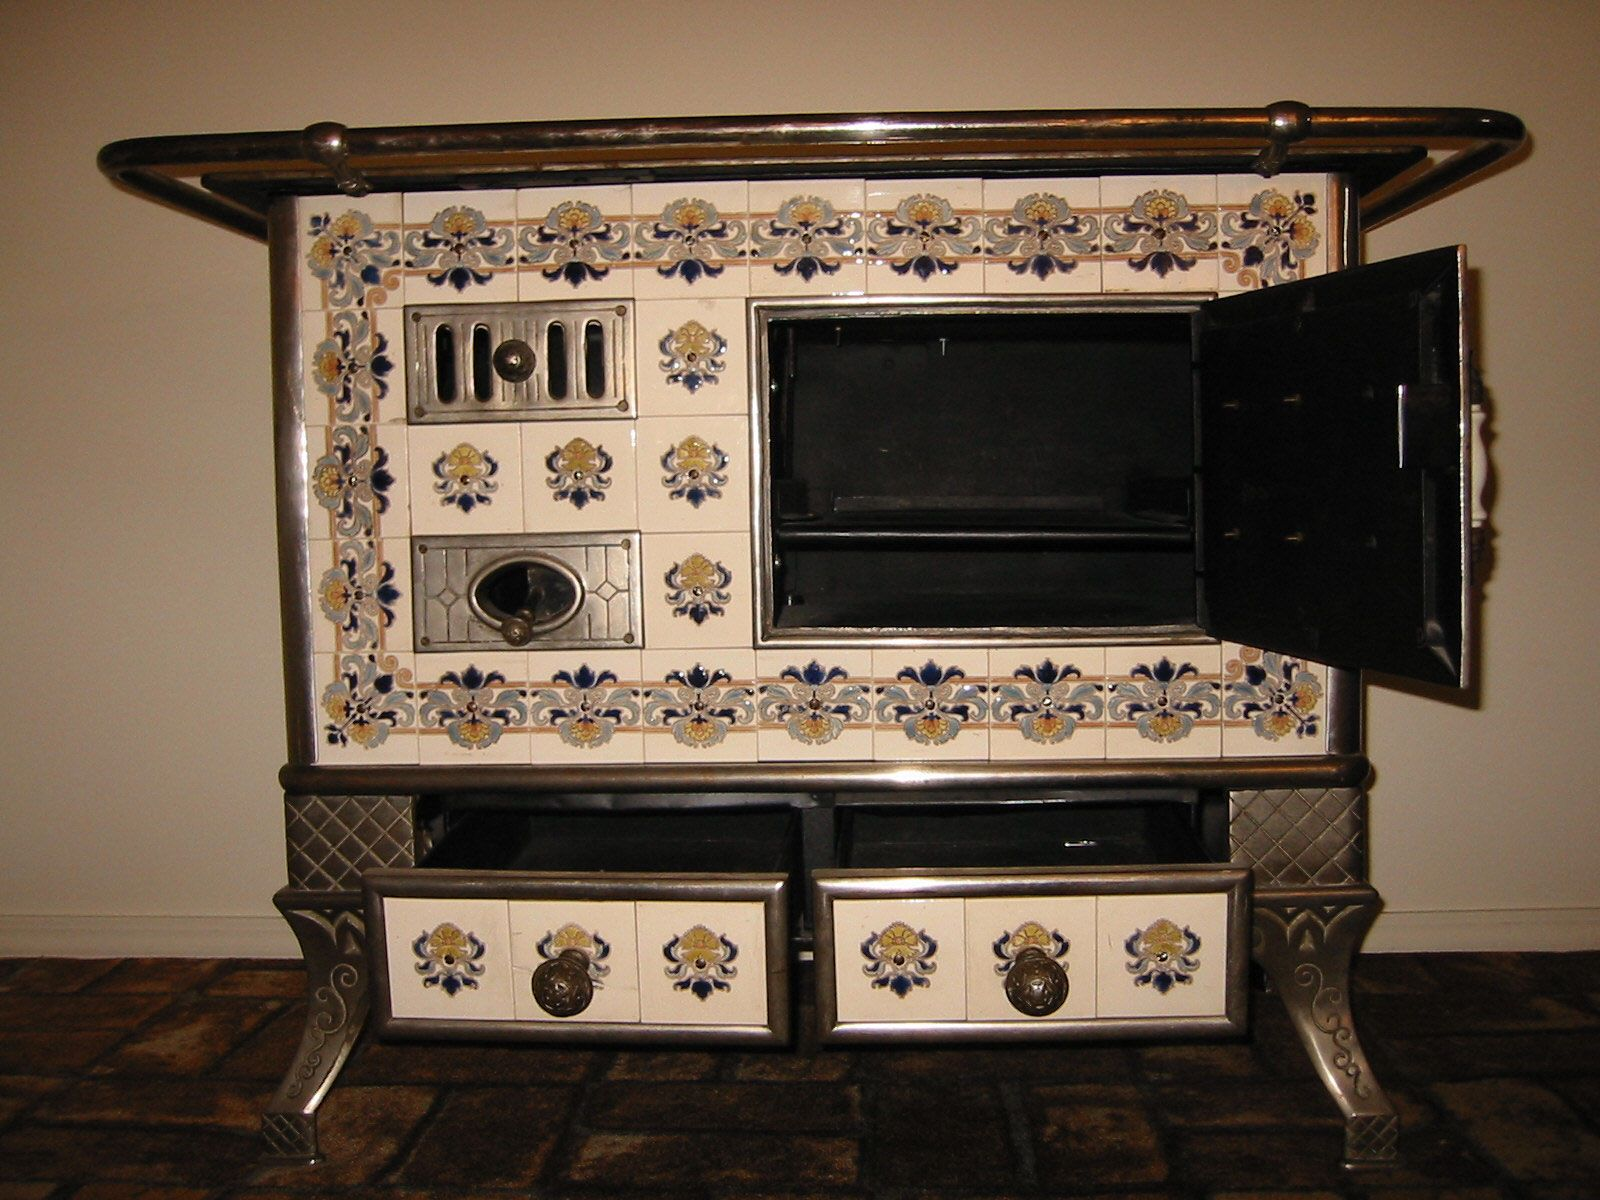 Antique French Tile Cook Stoves